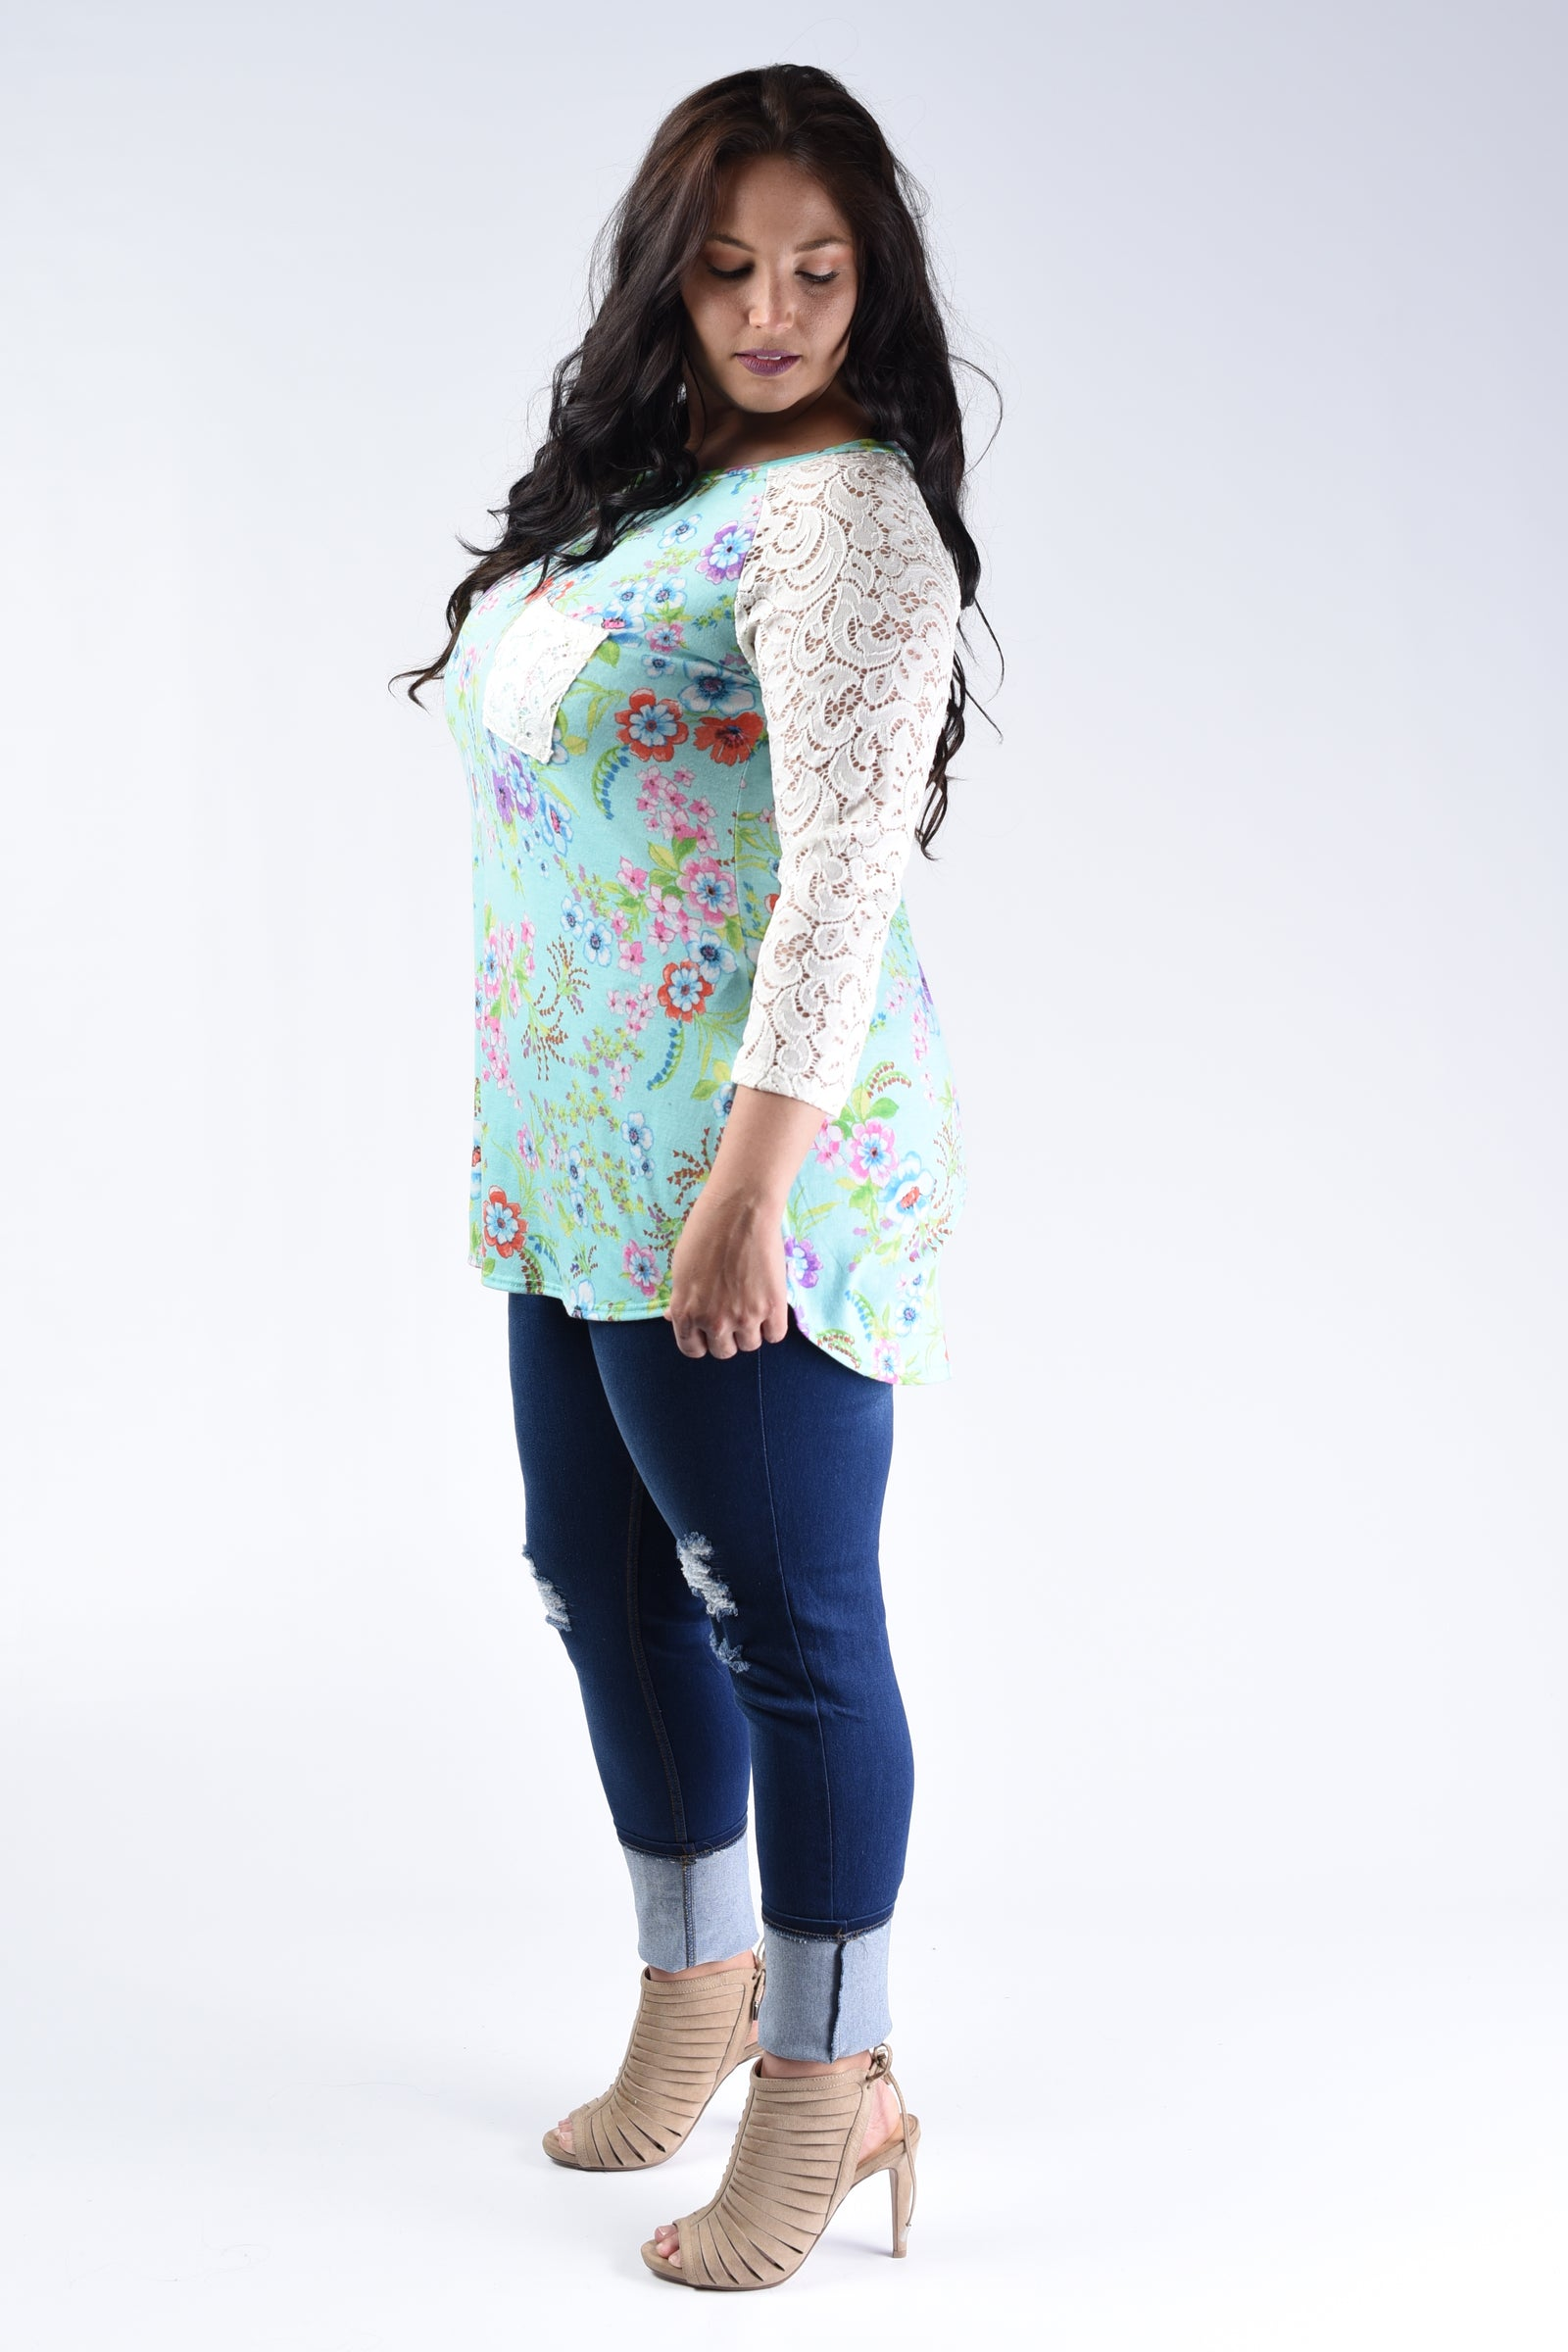 Mint Floral & Lace Top - www.mycurvystore.com - Curvy Boutique - Plus Size